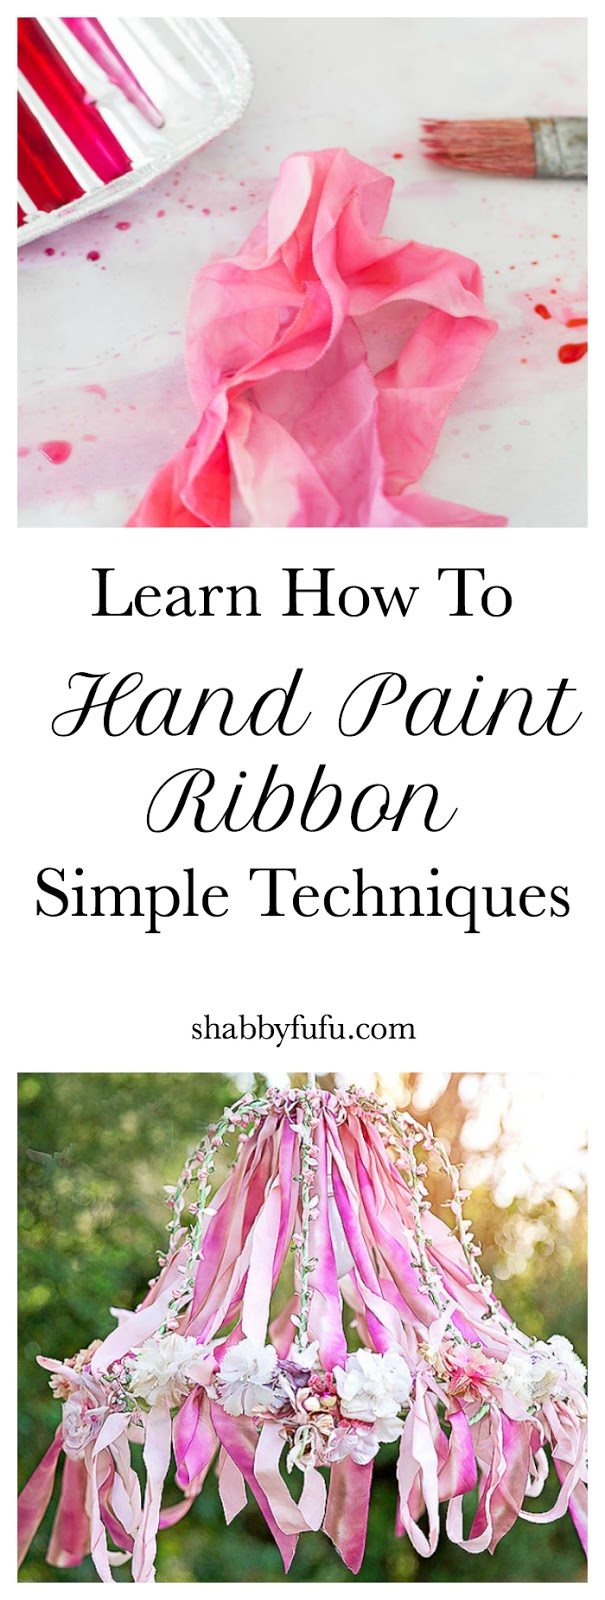 Learn How To Hand Paint Ribbon - Simple Techniques